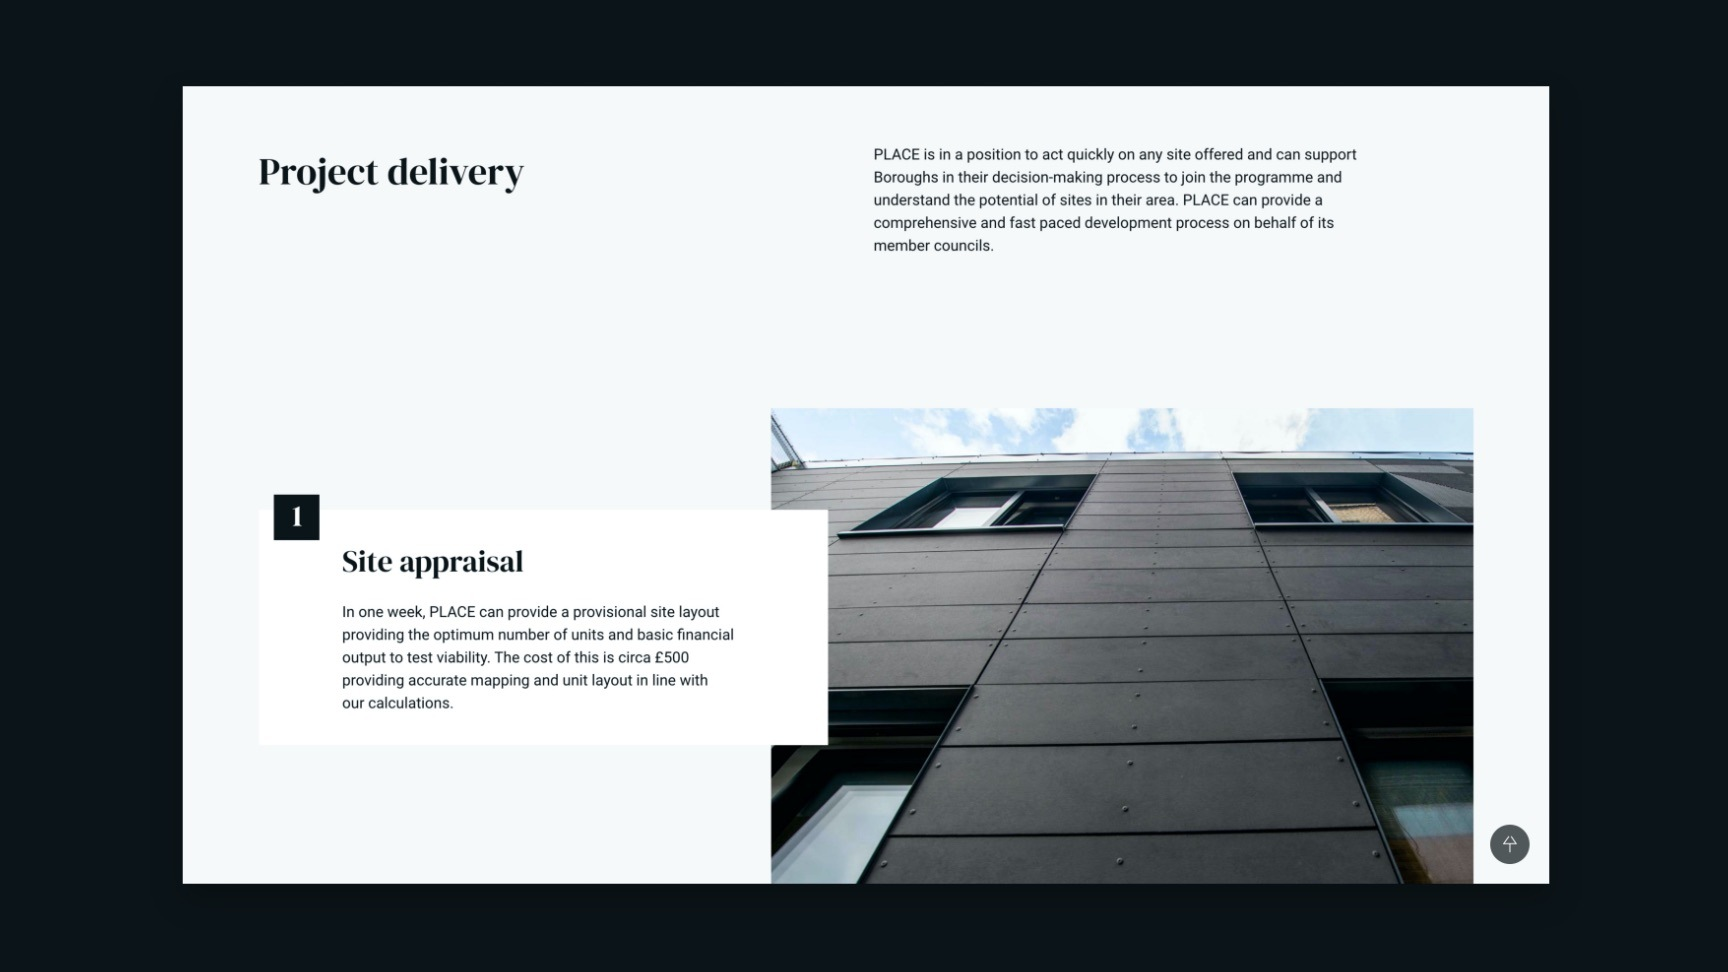 PRoject delivery page